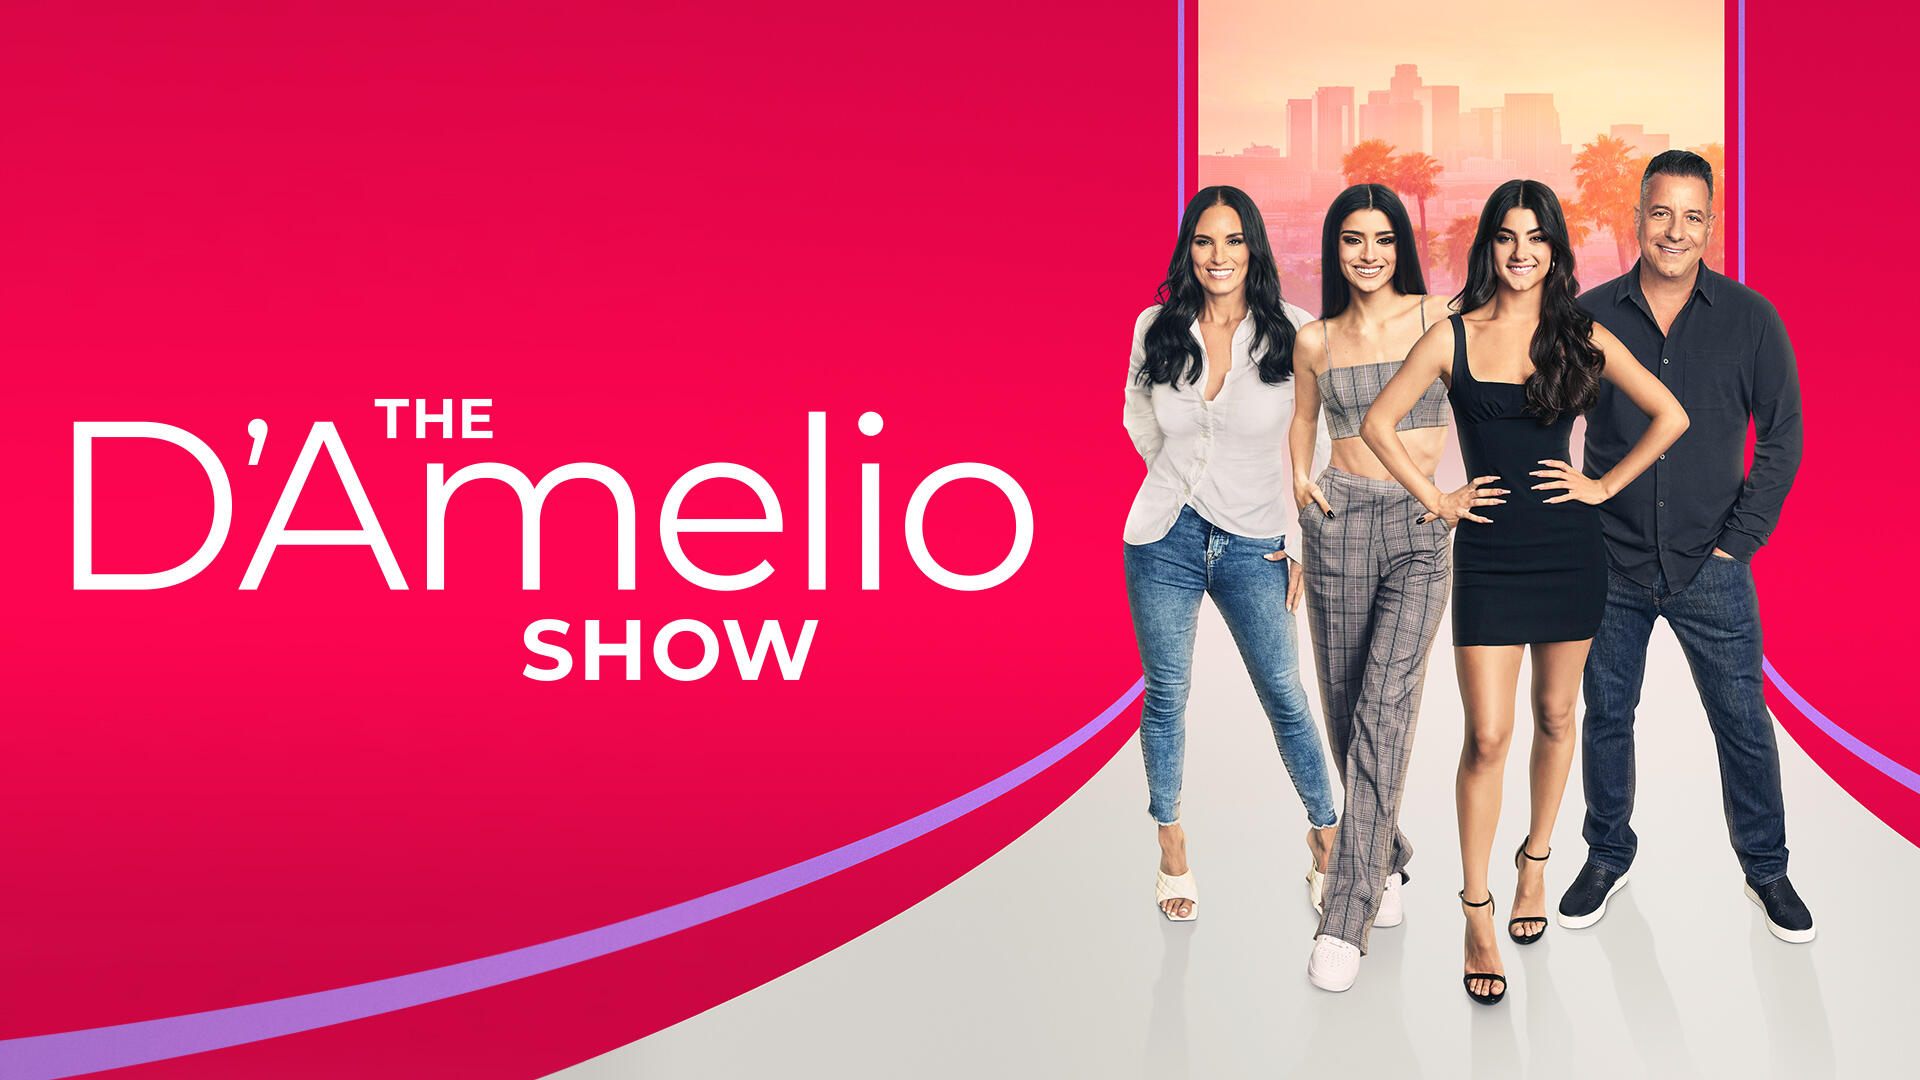 The D'Amelio Show -- From relative obscurity and a seemingly normal life, to being thrust into the Hollywood limelight almost overnight, the D'Amelio's are faced with new challenges and opportunities they could not have imagined. Charli, who at 16 became one of the biggest celebrities with over 150 million followers combined and #1 on the TikTok platform in less than a year, has the world at her fingertips and is working to balance fame and family life with dancing, relationships, making new friends in LA and battling the haters online. Her sister, Dixie, now 19, is experiencing her own sudden rise to fame with over 80 million followers combined, and an exploding music career. For mom Heidi and dad Marc, raising teenagers is hard enough before adding a cross-country move, supporting their daughters' dreams, and doing the best they can to stay close and protect their girls from the dark side of fame, while also trying to adjust to life in Hollywood. Charli D'Amelio, Dixie D'Amelio, Heidi D'Amelio and Marc D'Amelio, shown. (Courtesy of Hulu)